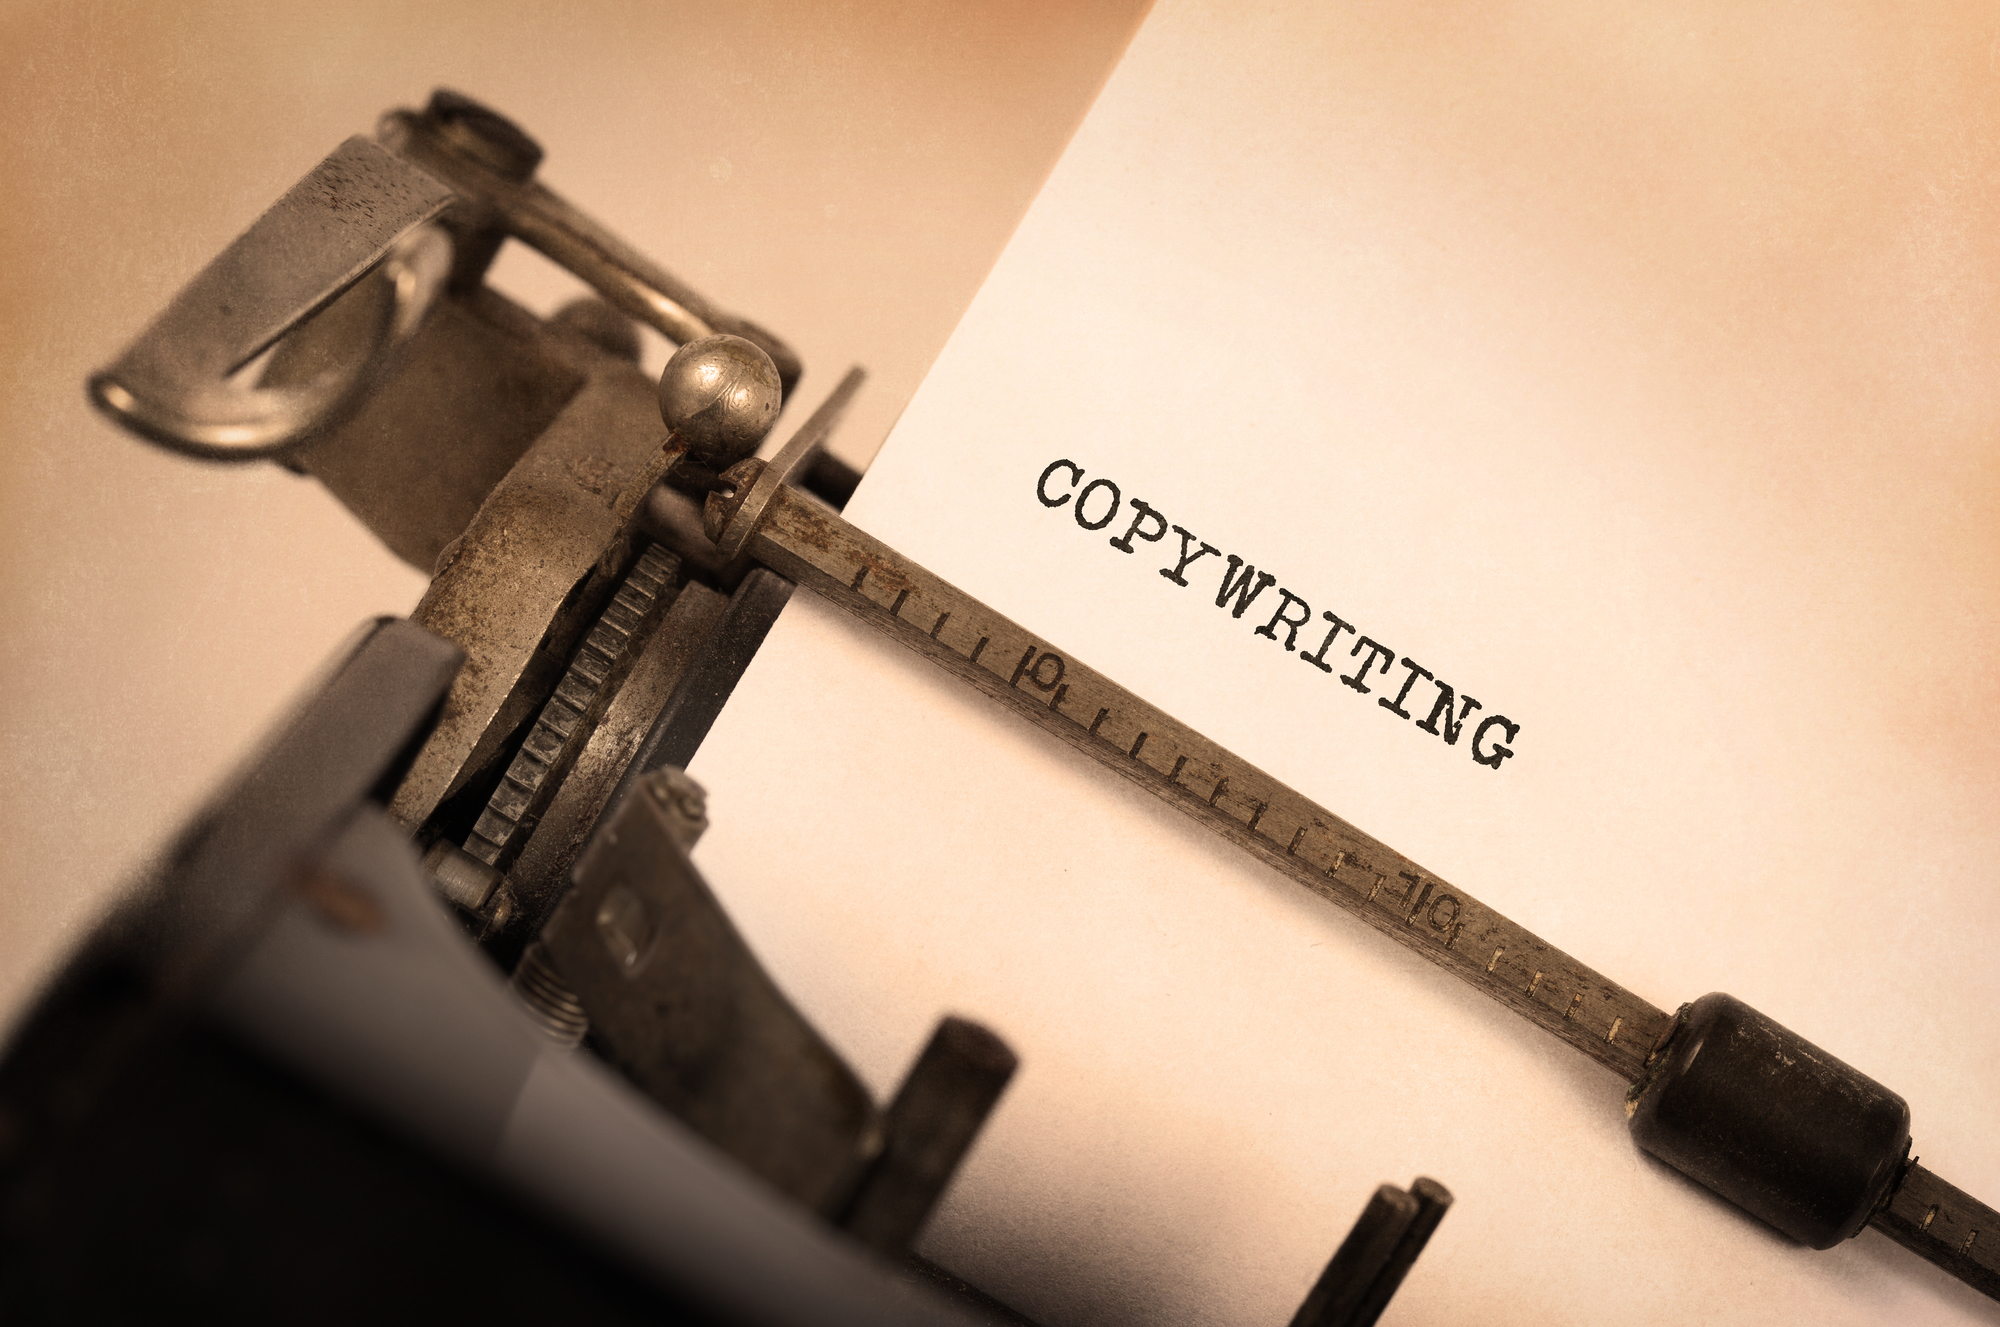 Compelling Copywriting That Sells